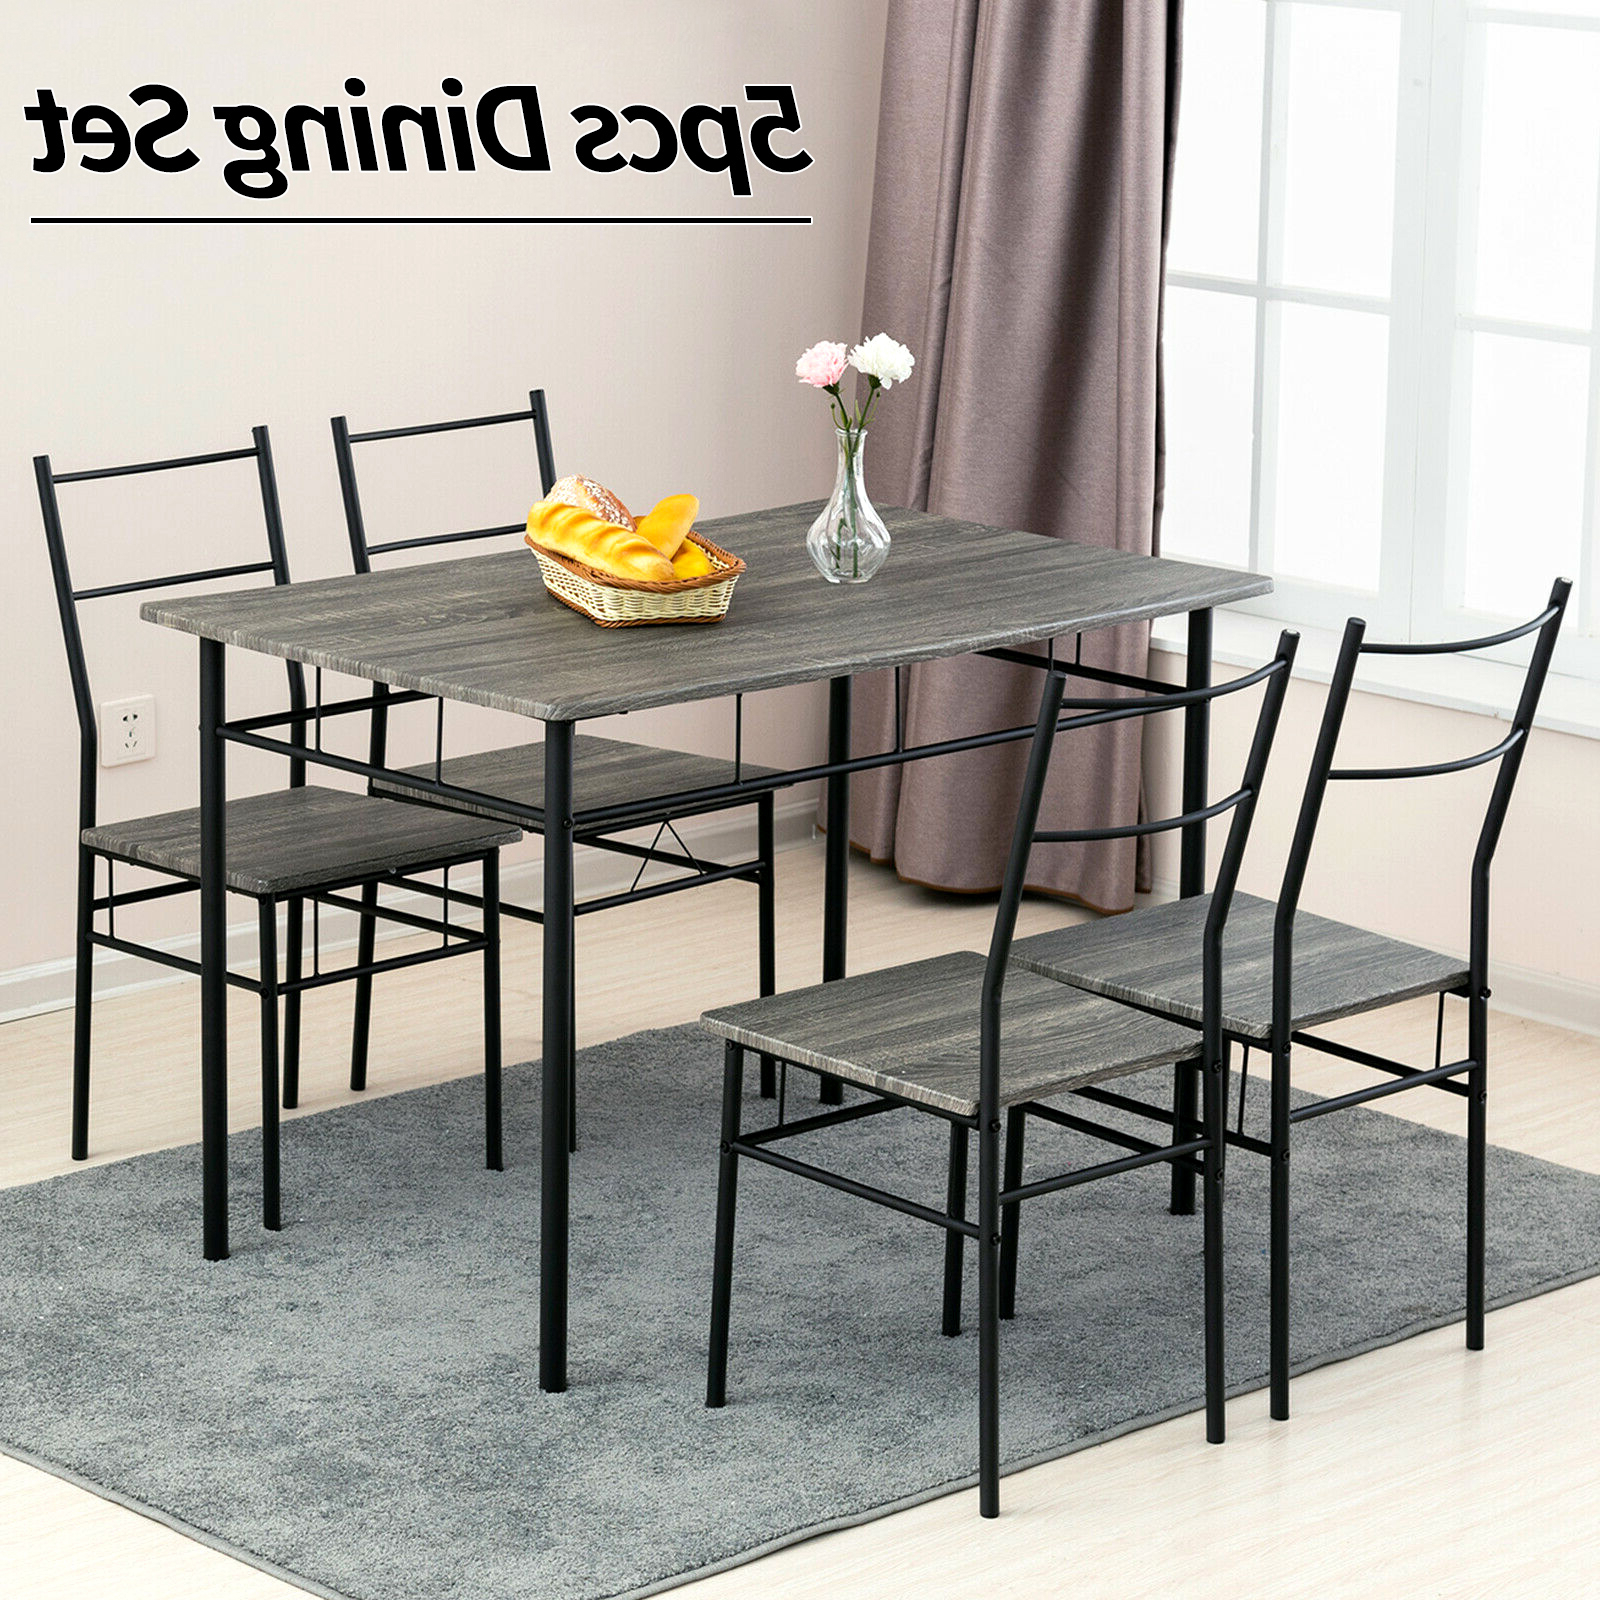 2017 Wood Top Dining Tables For Details About 5 Piece Metal Dining Table Set 4 Chairs Wood Top Dining Room Home Furniture Grey (View 13 of 30)